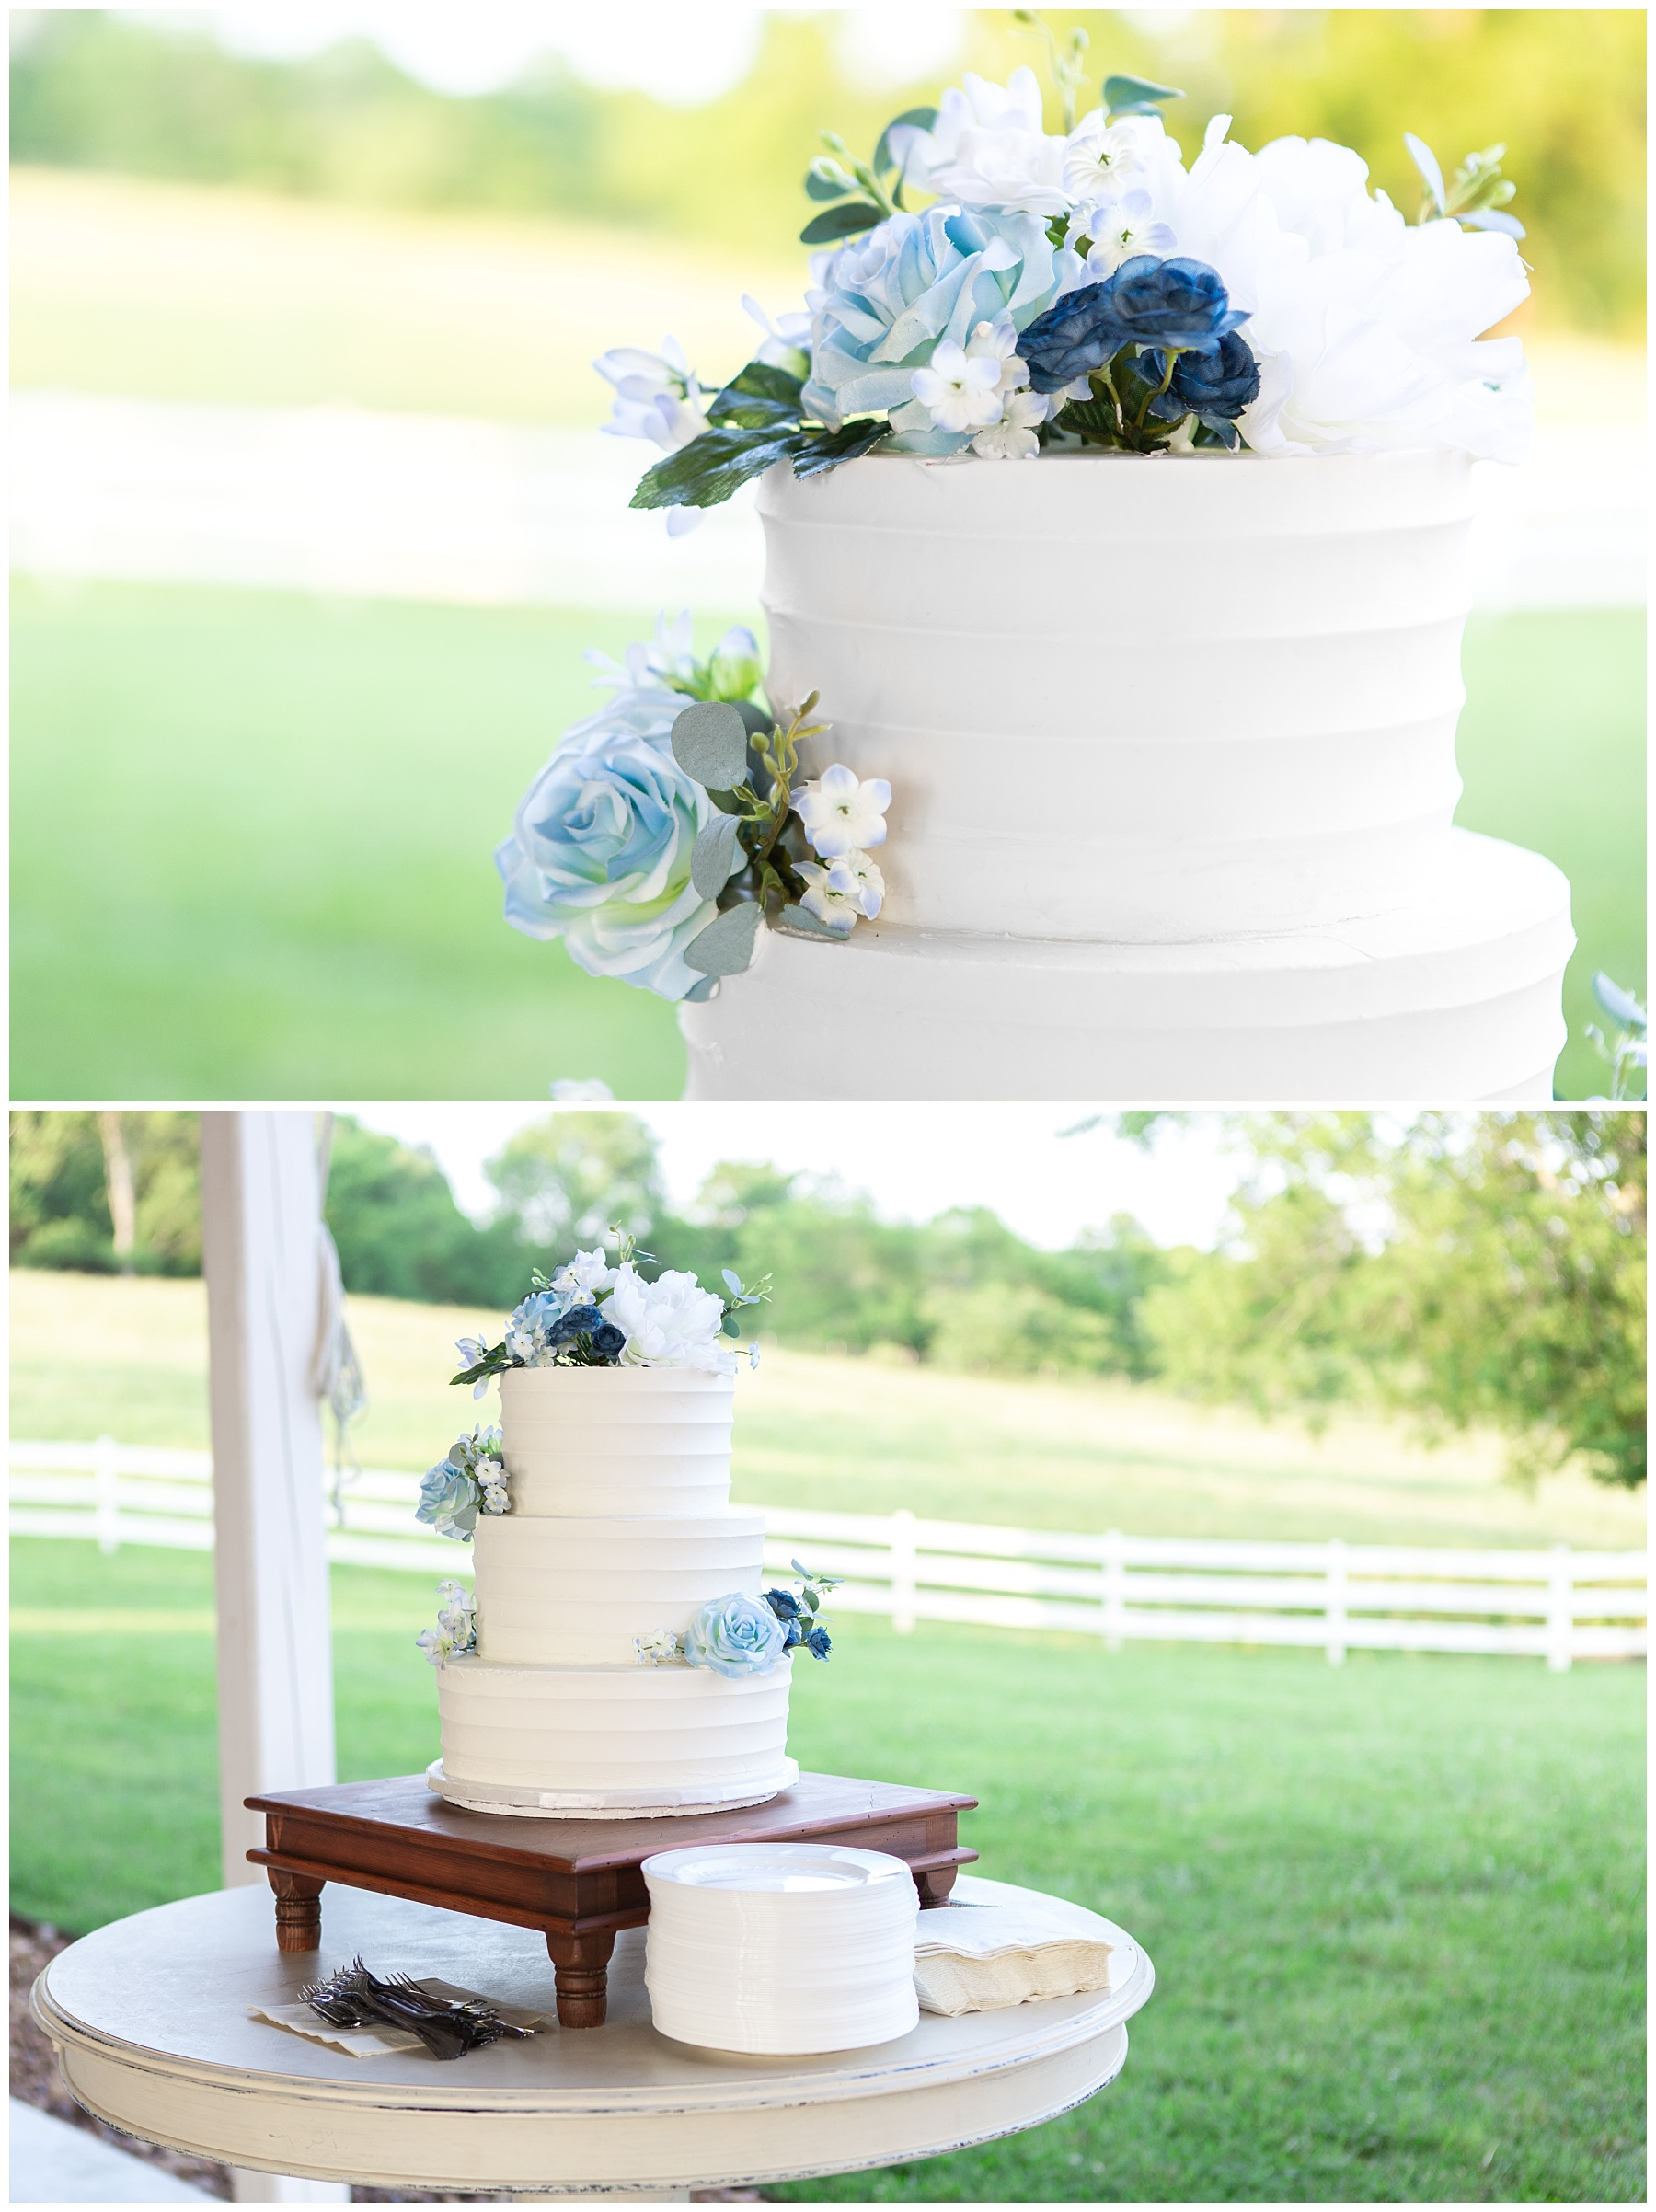 Wedding Cake with Blue flowers - Nashville Wedding